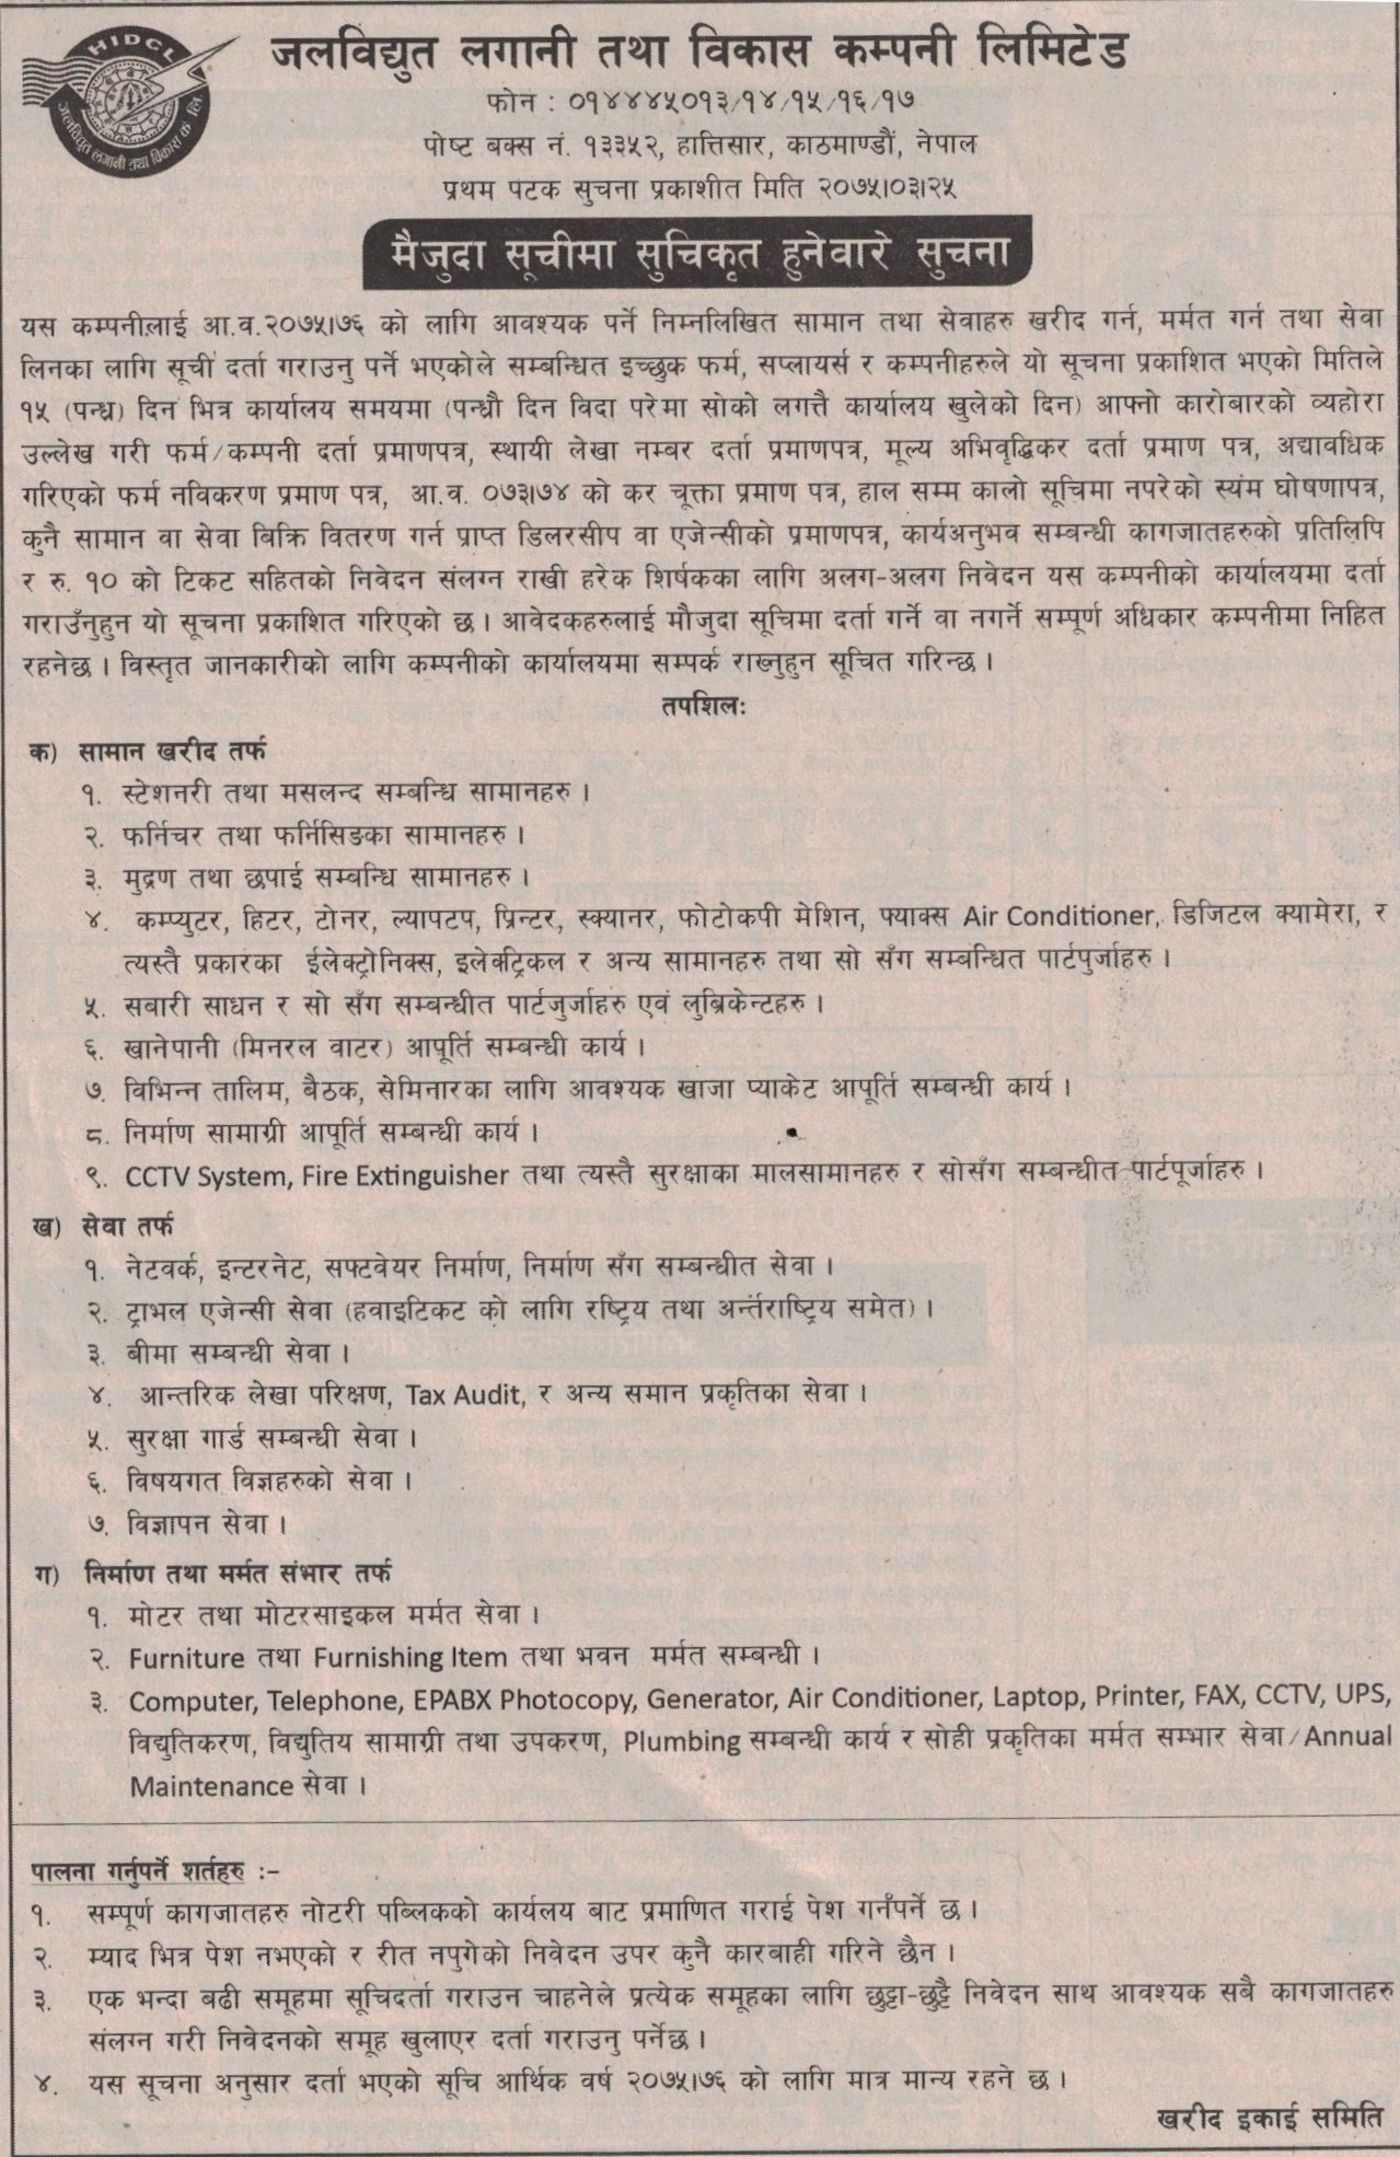 Bids And Tenders Nepal Preferred Vendor List Fy 207576 Office